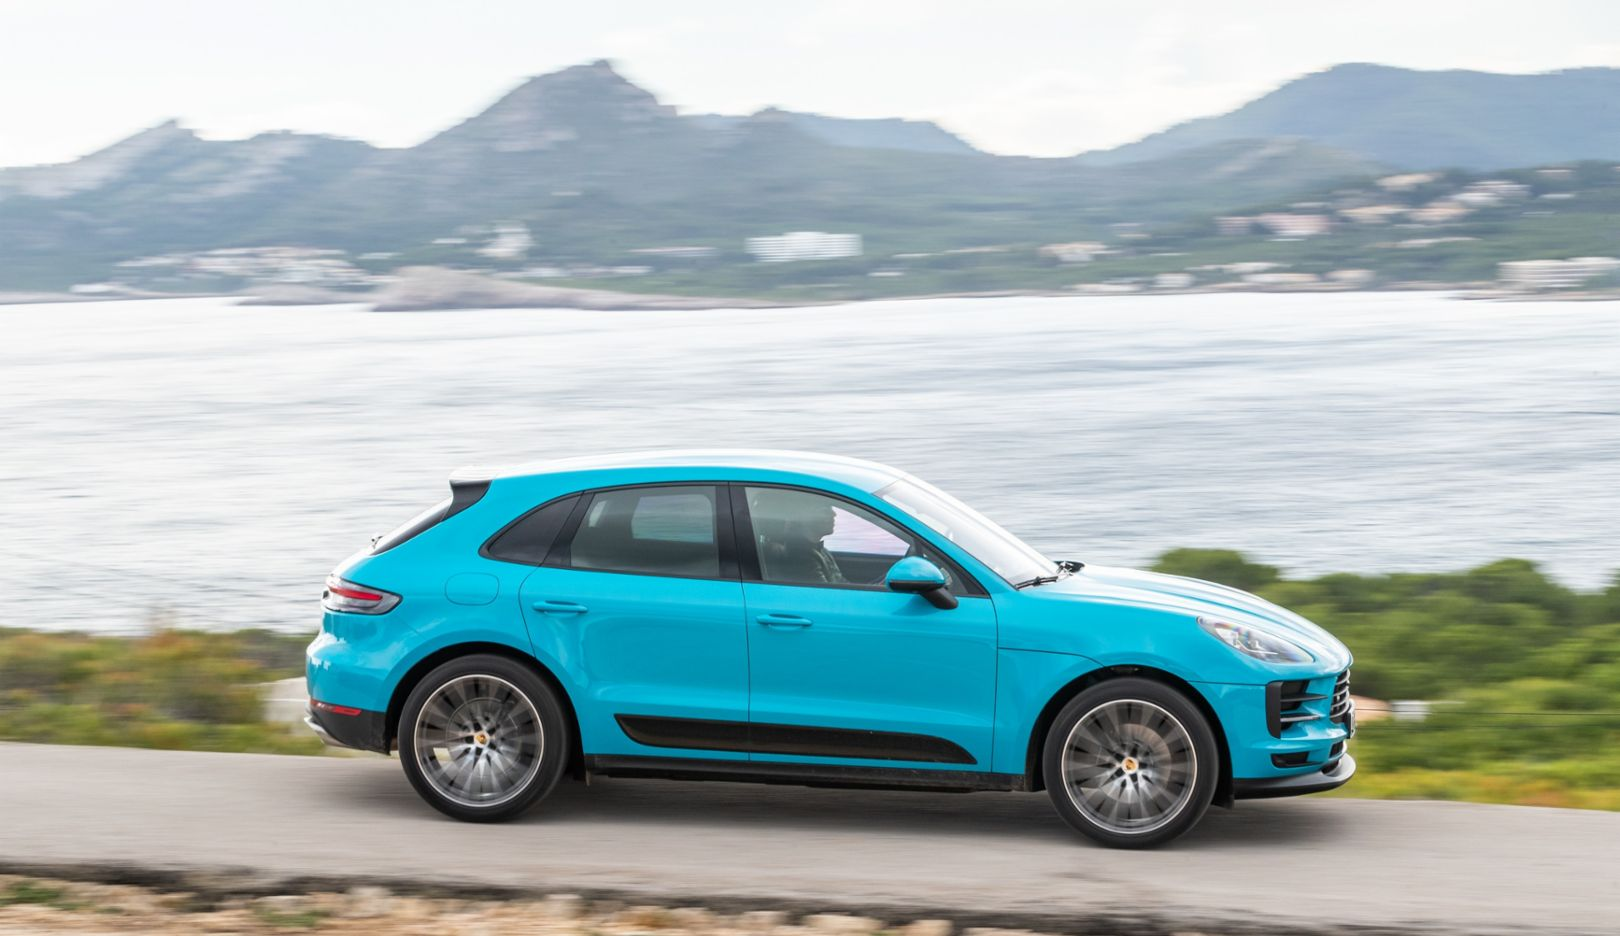 Porsche Reports Record U.S. Retail Sales in June